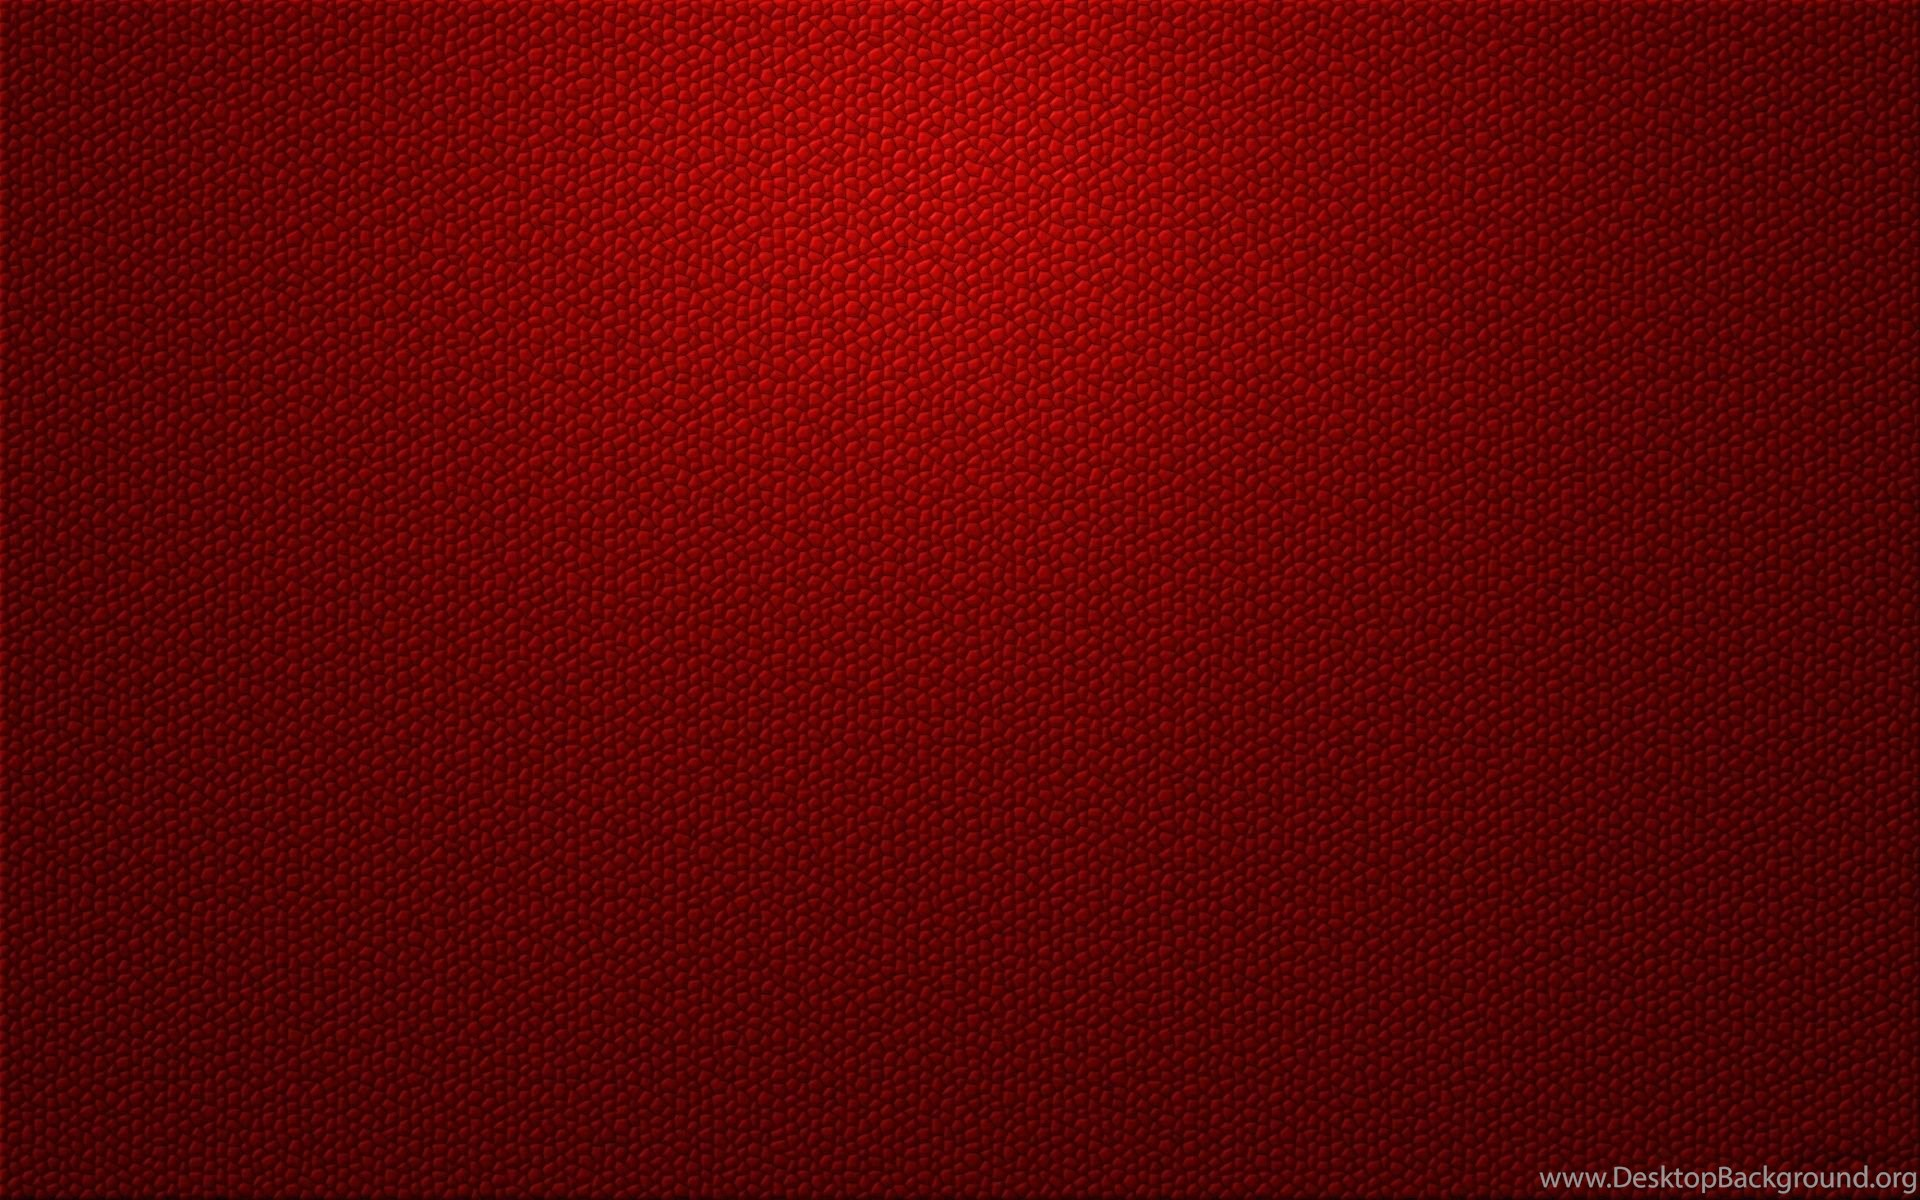 Red Textured Backgrounds Hd Wallpapers 773327 Desktop Background